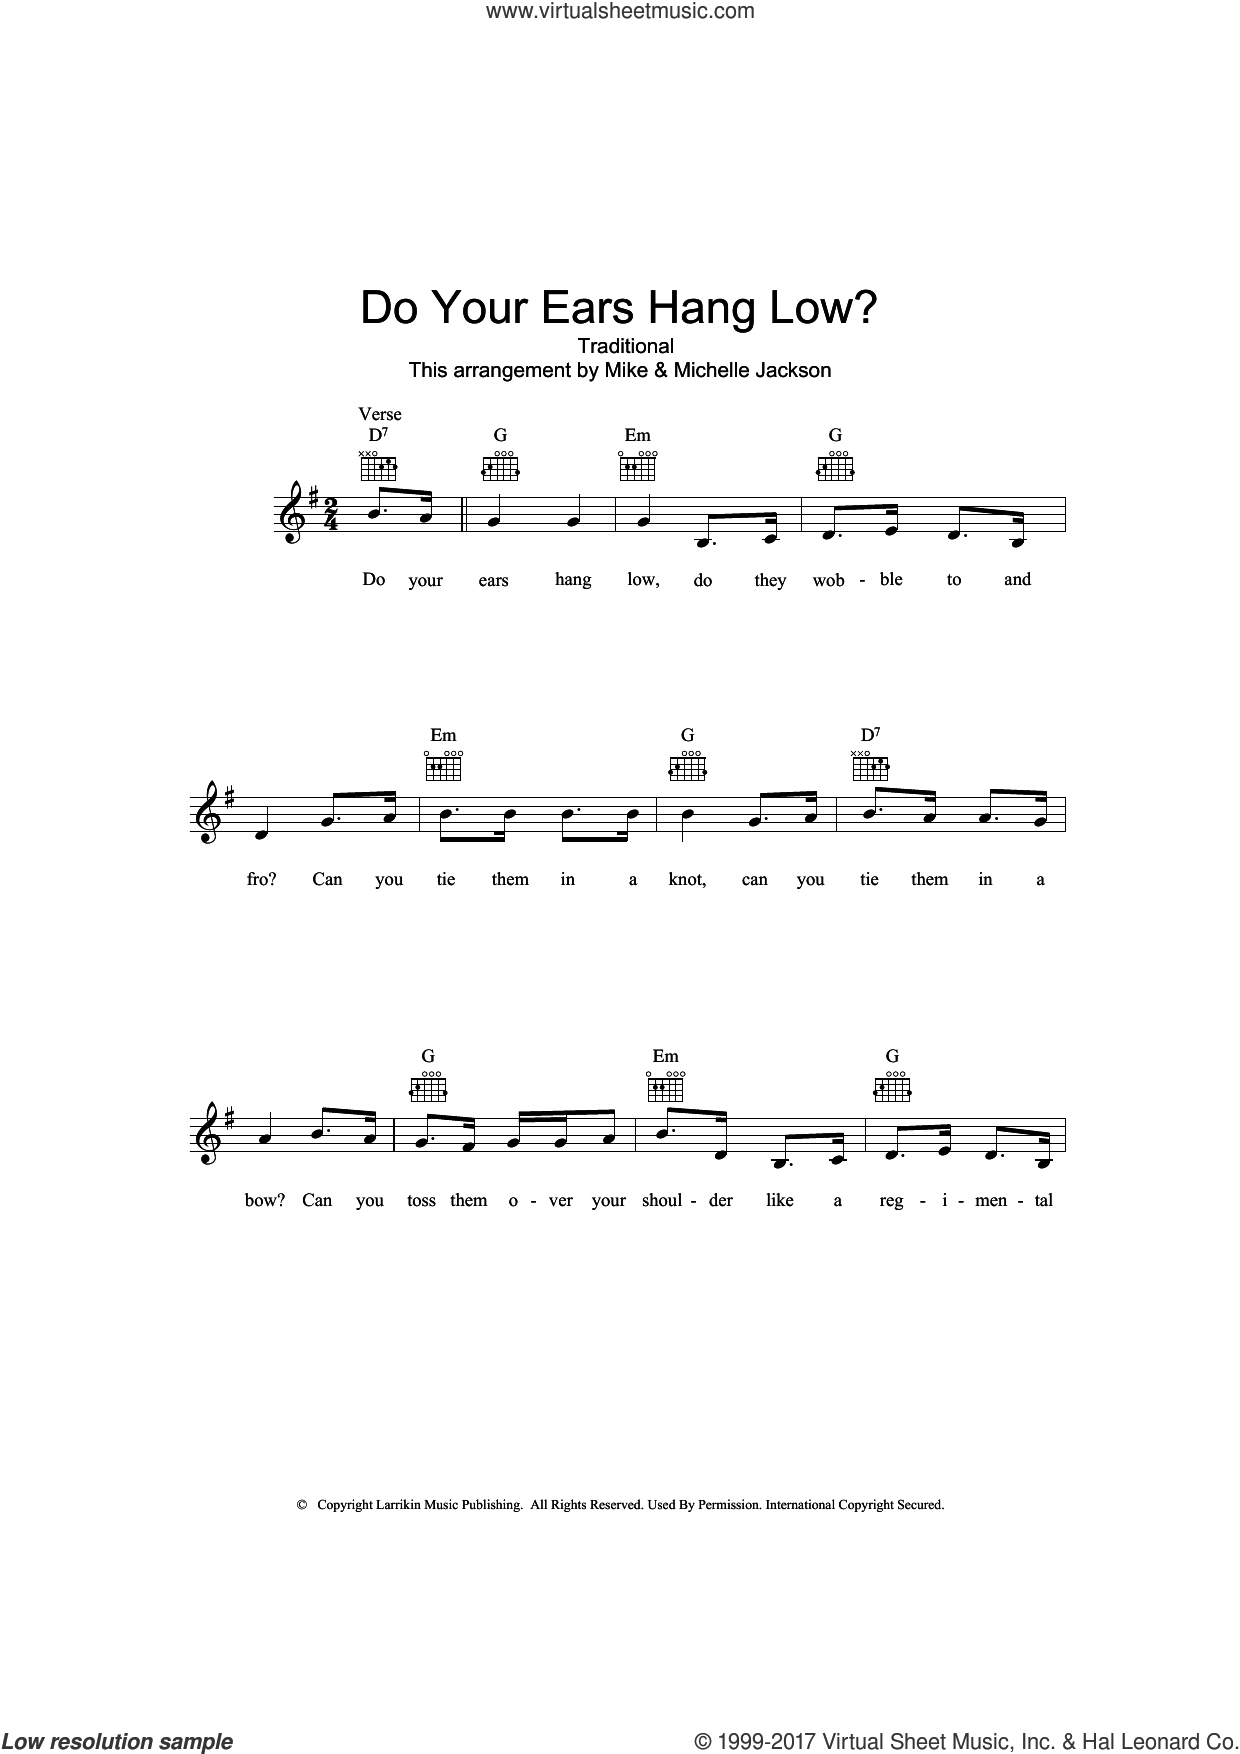 Do Your Ears Hang Low? sheet music for voice and other instruments (fake book), intermediate skill level